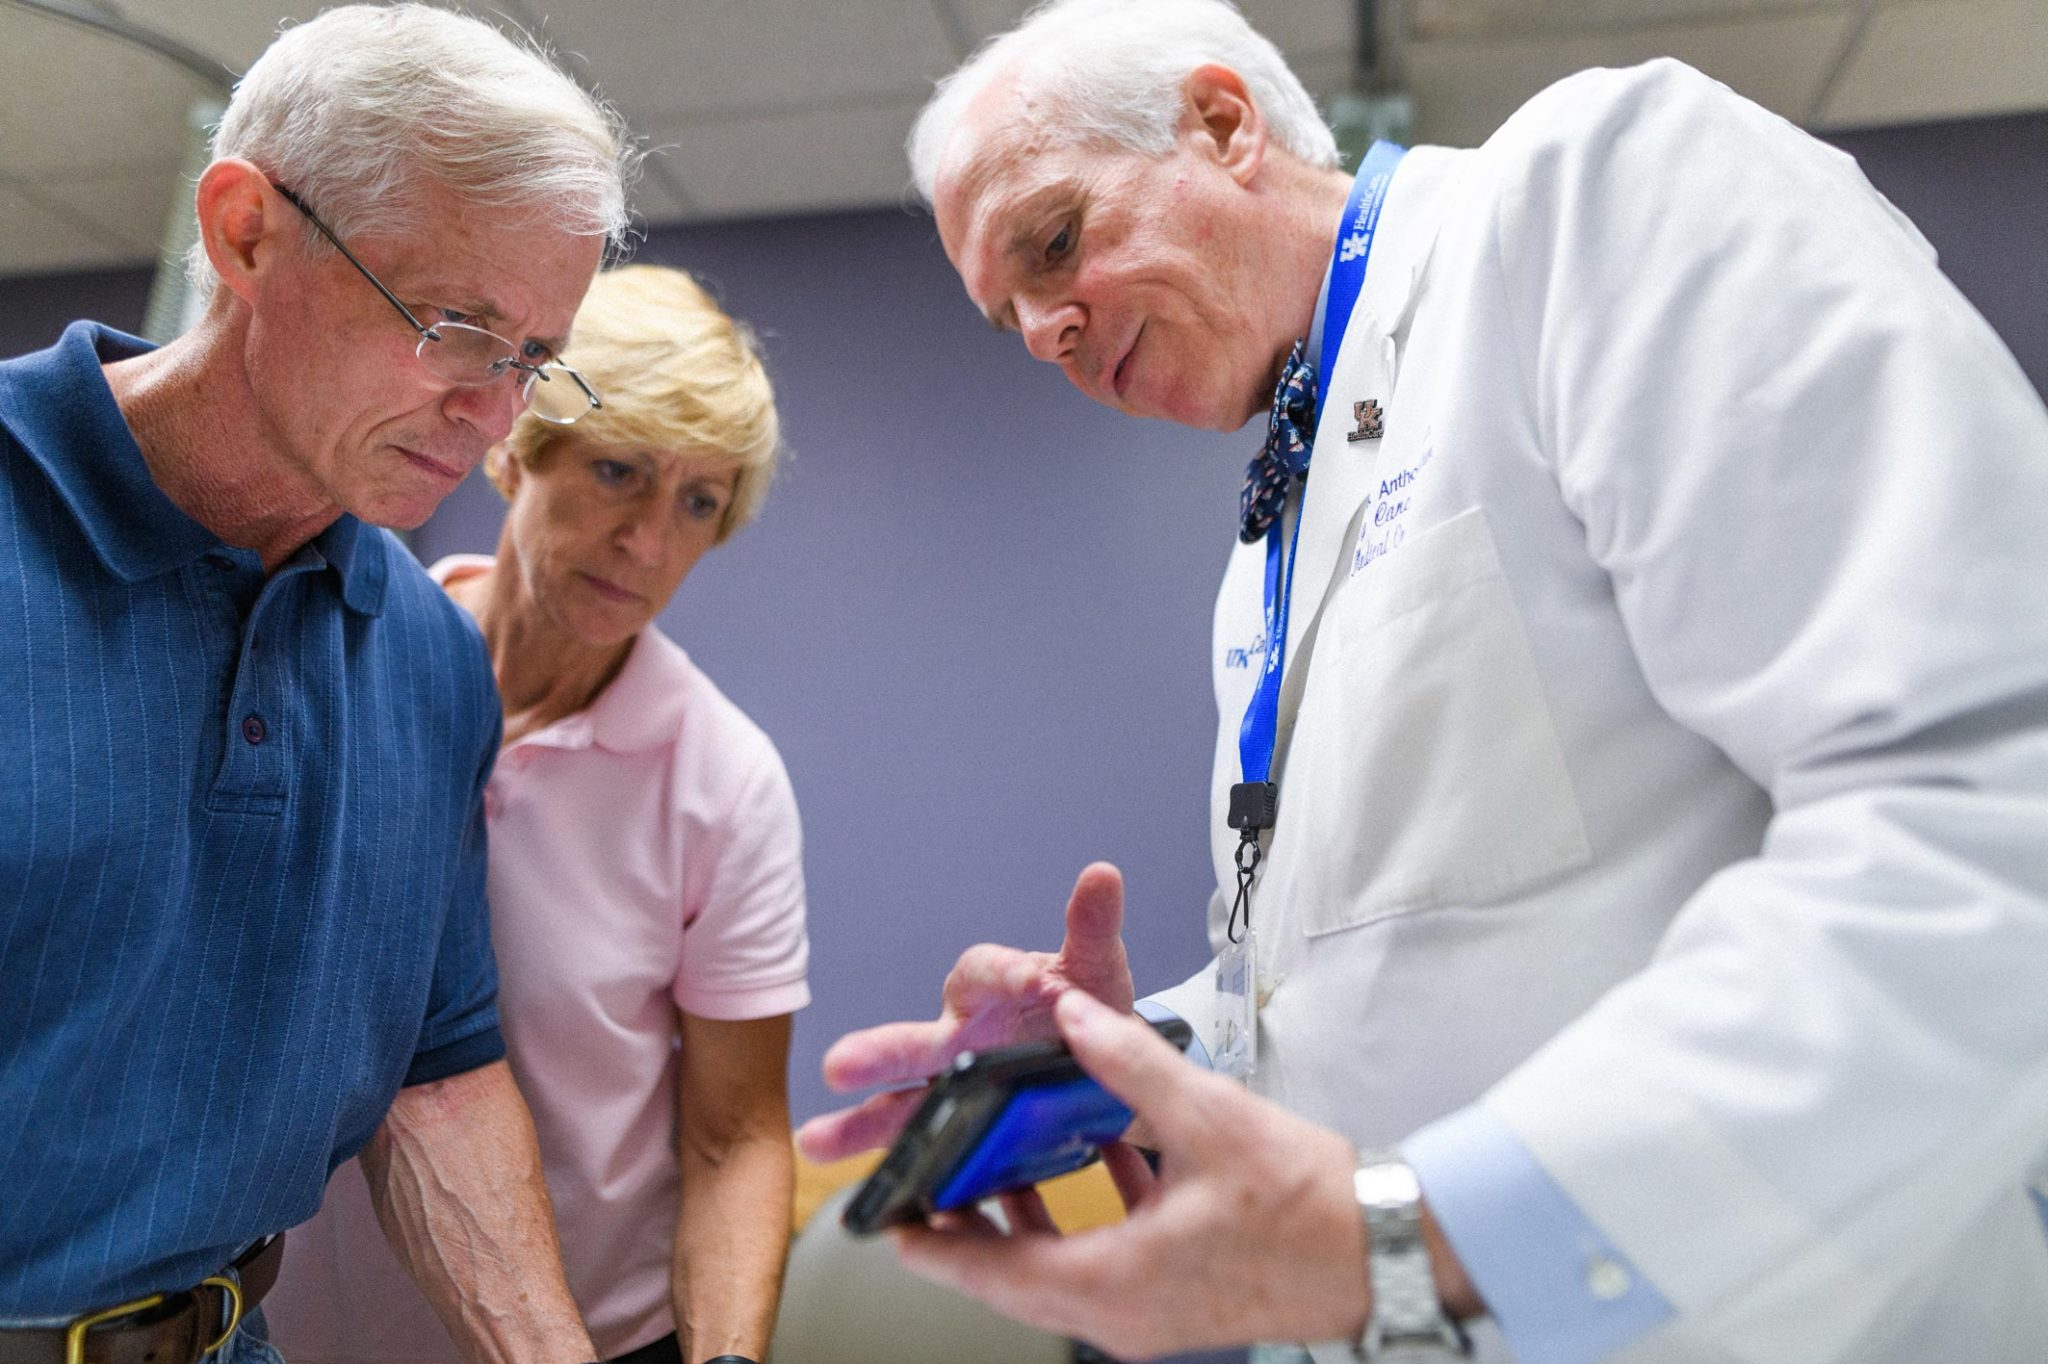 Dr. Lowell Anthony, a specialist at Markey, explains a recent scan to Joe and Cathy.